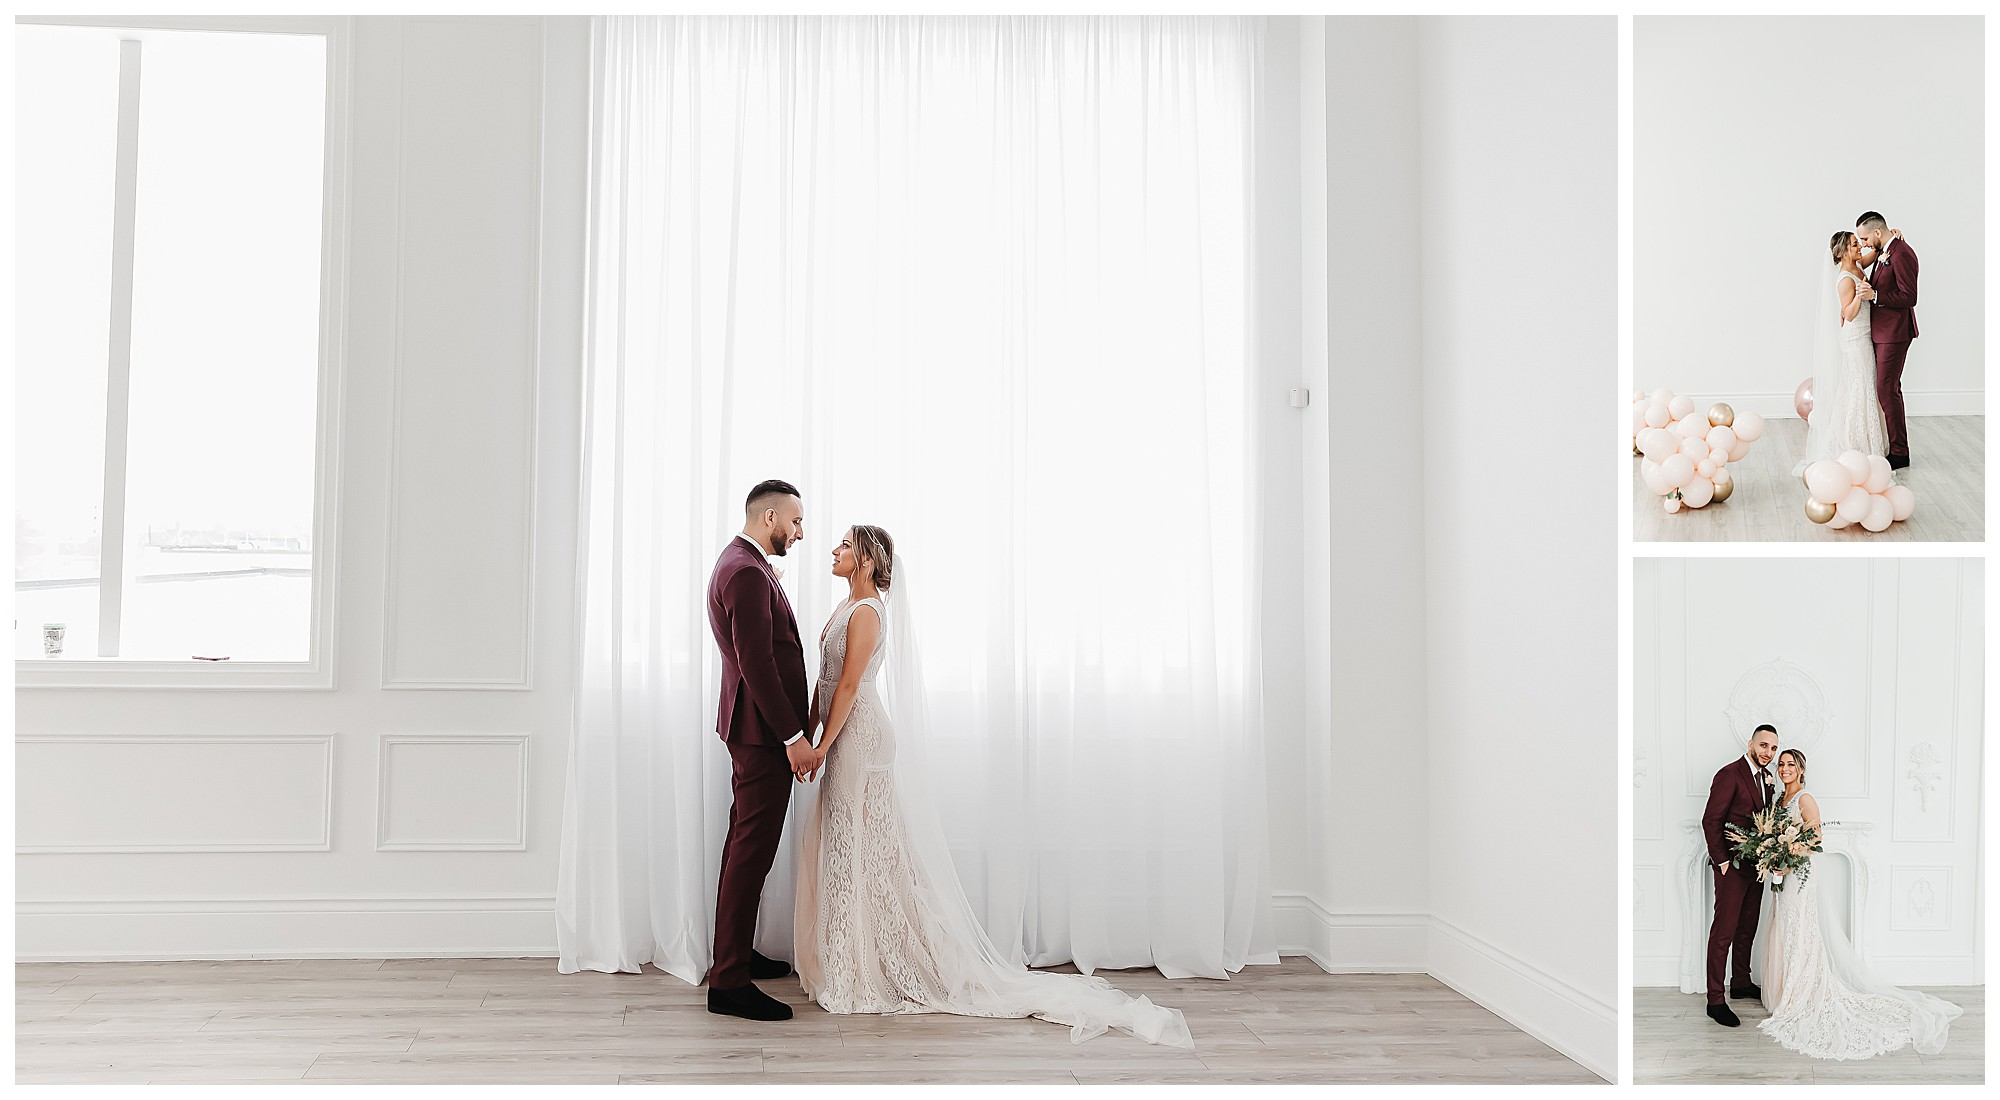 Joanna-Christos-Grand-Luxe-Wedding-Photos-Mint-Room-Toronto-VanDaele-Russell_0094.jpg